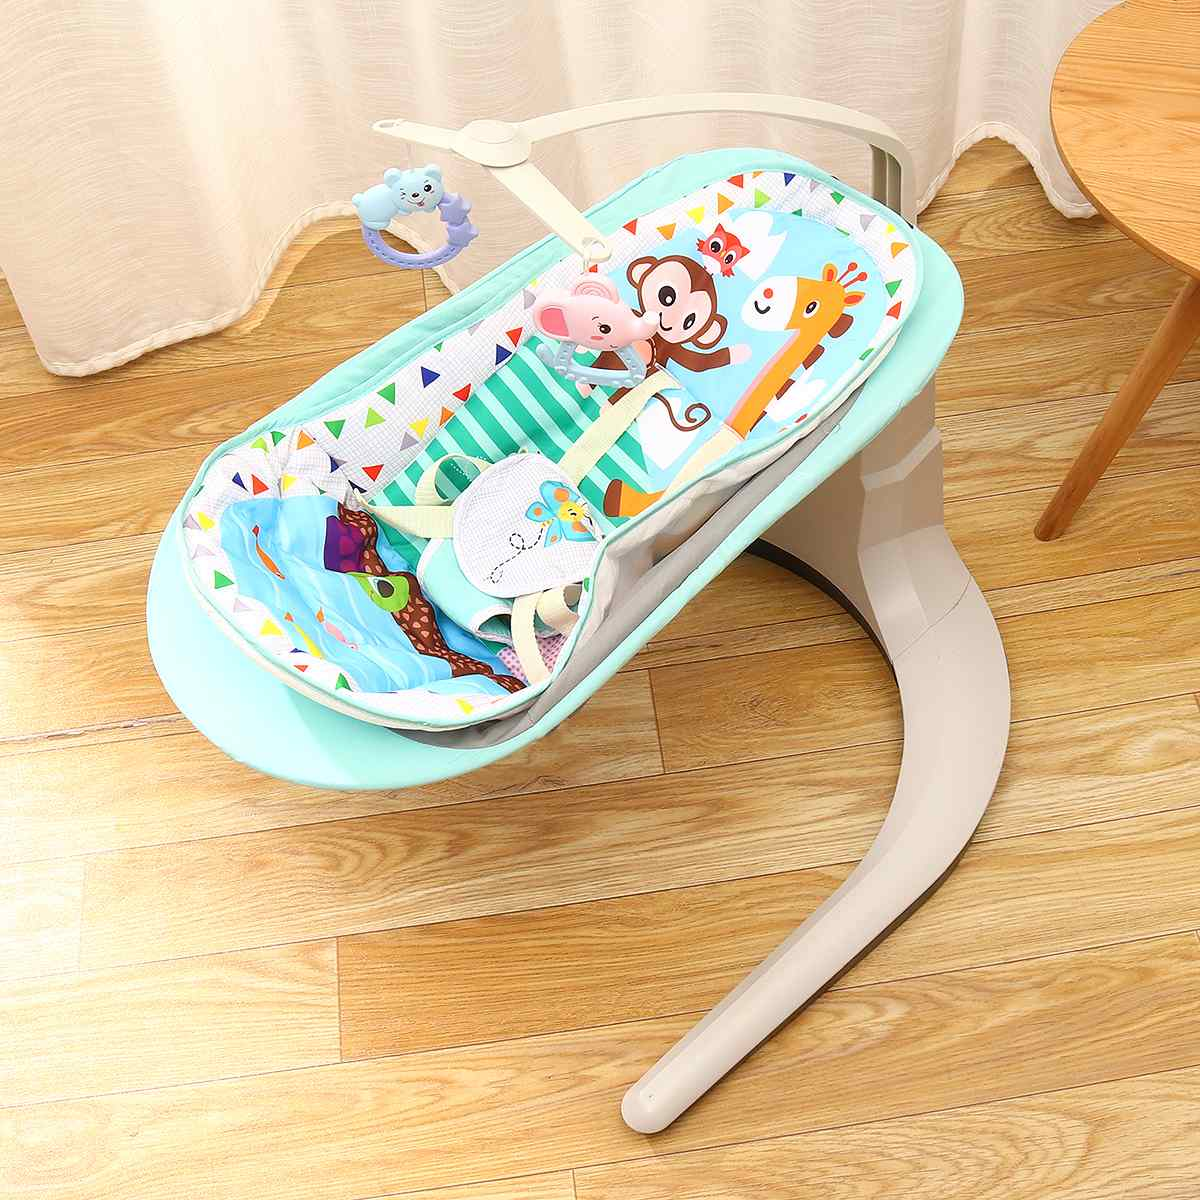 Hd4c53e3ccc0e475b8035ab28dbe632f0A 2 in 1 Newborn Gift Multi-function Music Electric Swing Chair Infant Baby Rocking Chair Comfort BB Cradle Baby Rocker Swing 0-3